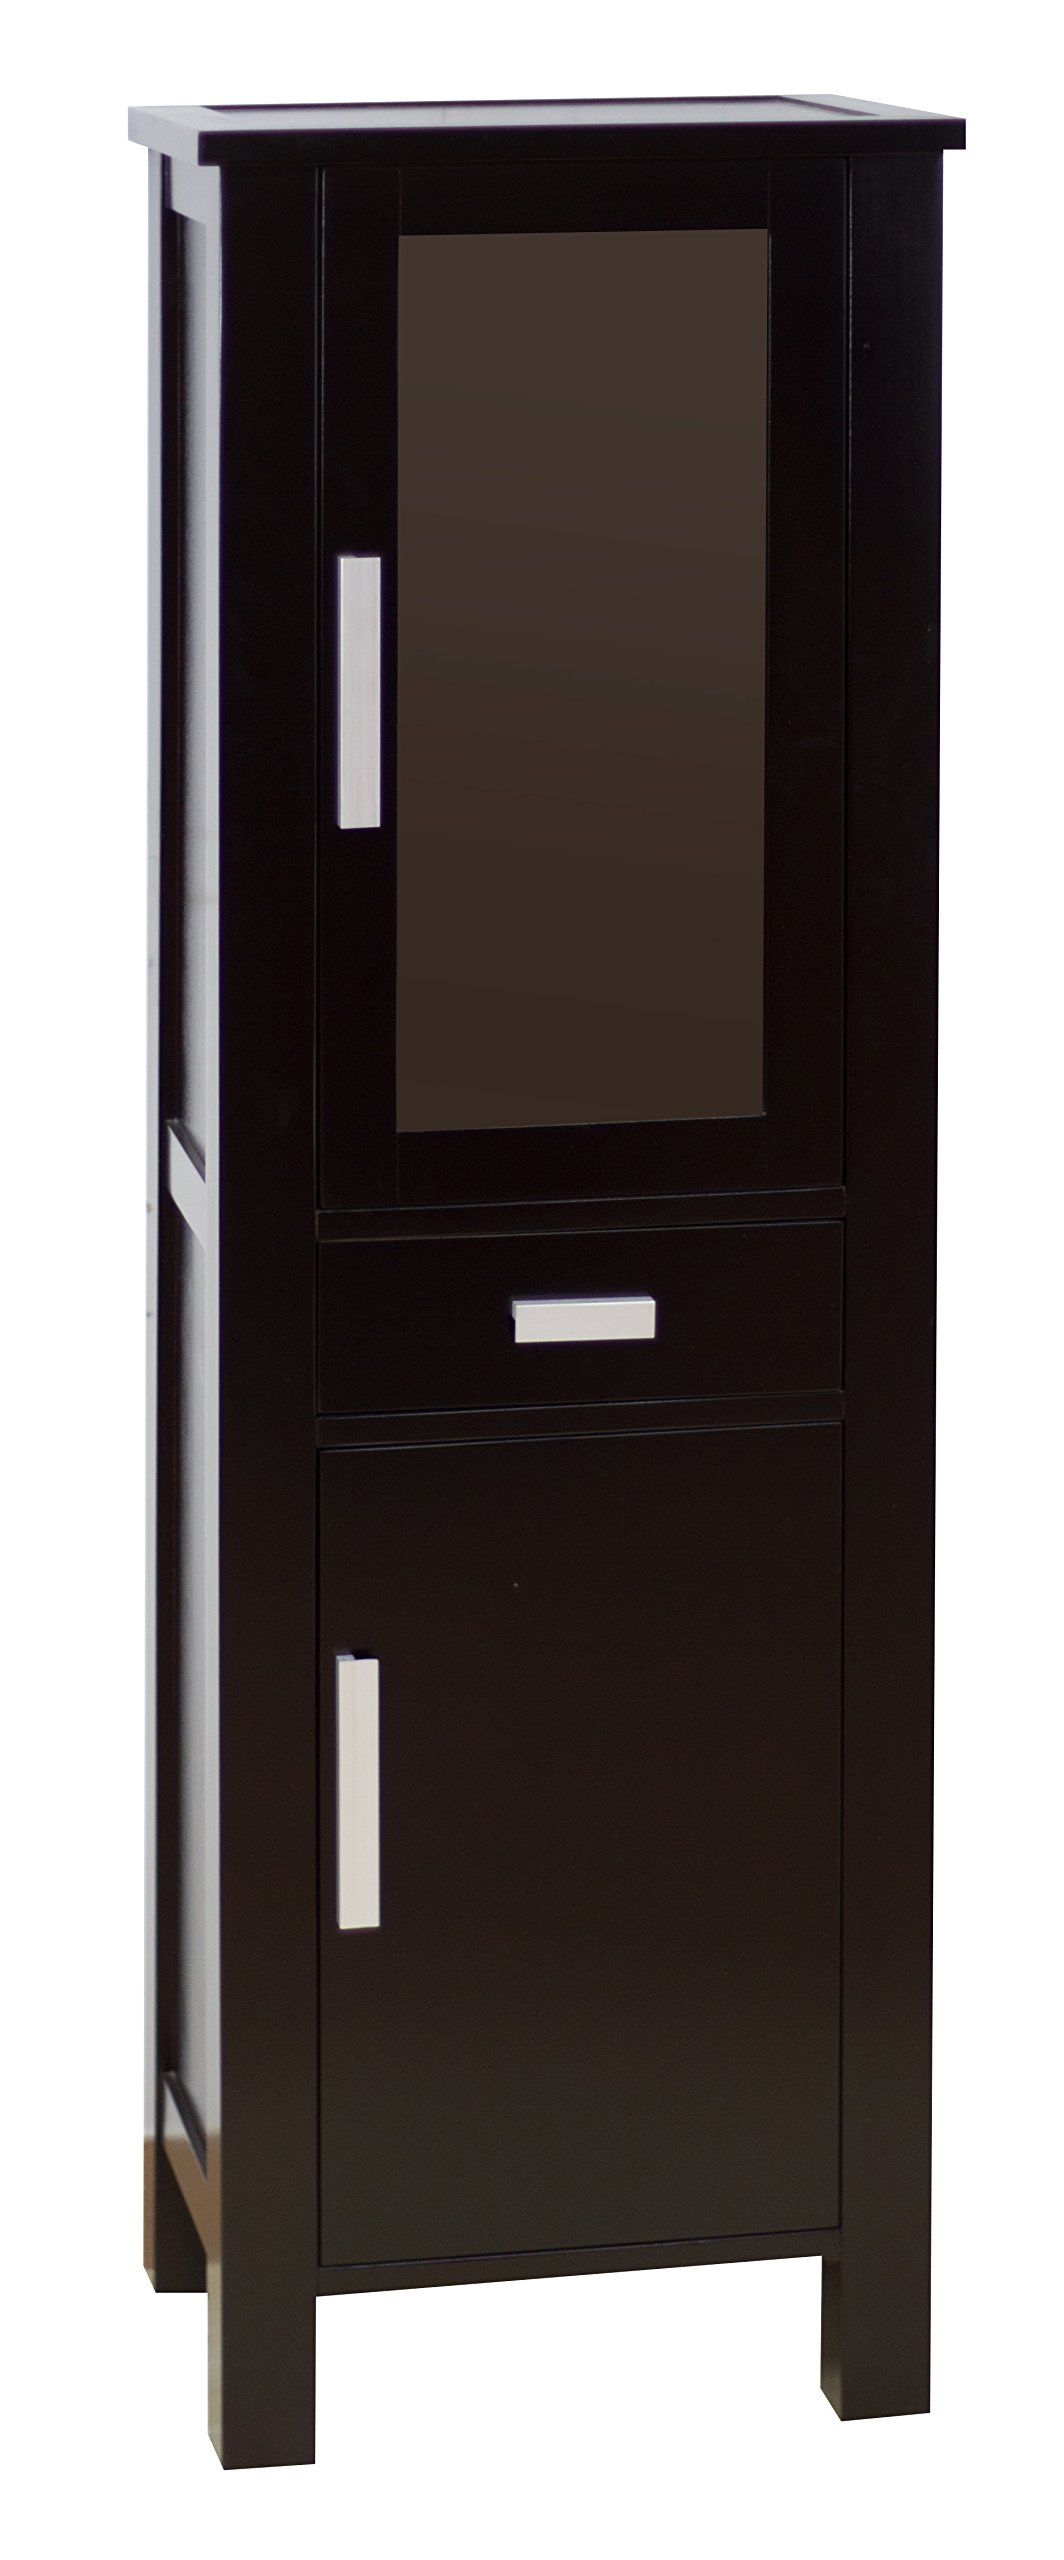 American Imaginations AI-102-33 Transitional Birch Wood-Veneer Linen Tower, 20-Inch x 62-Inch, Dark Mahogany Finish